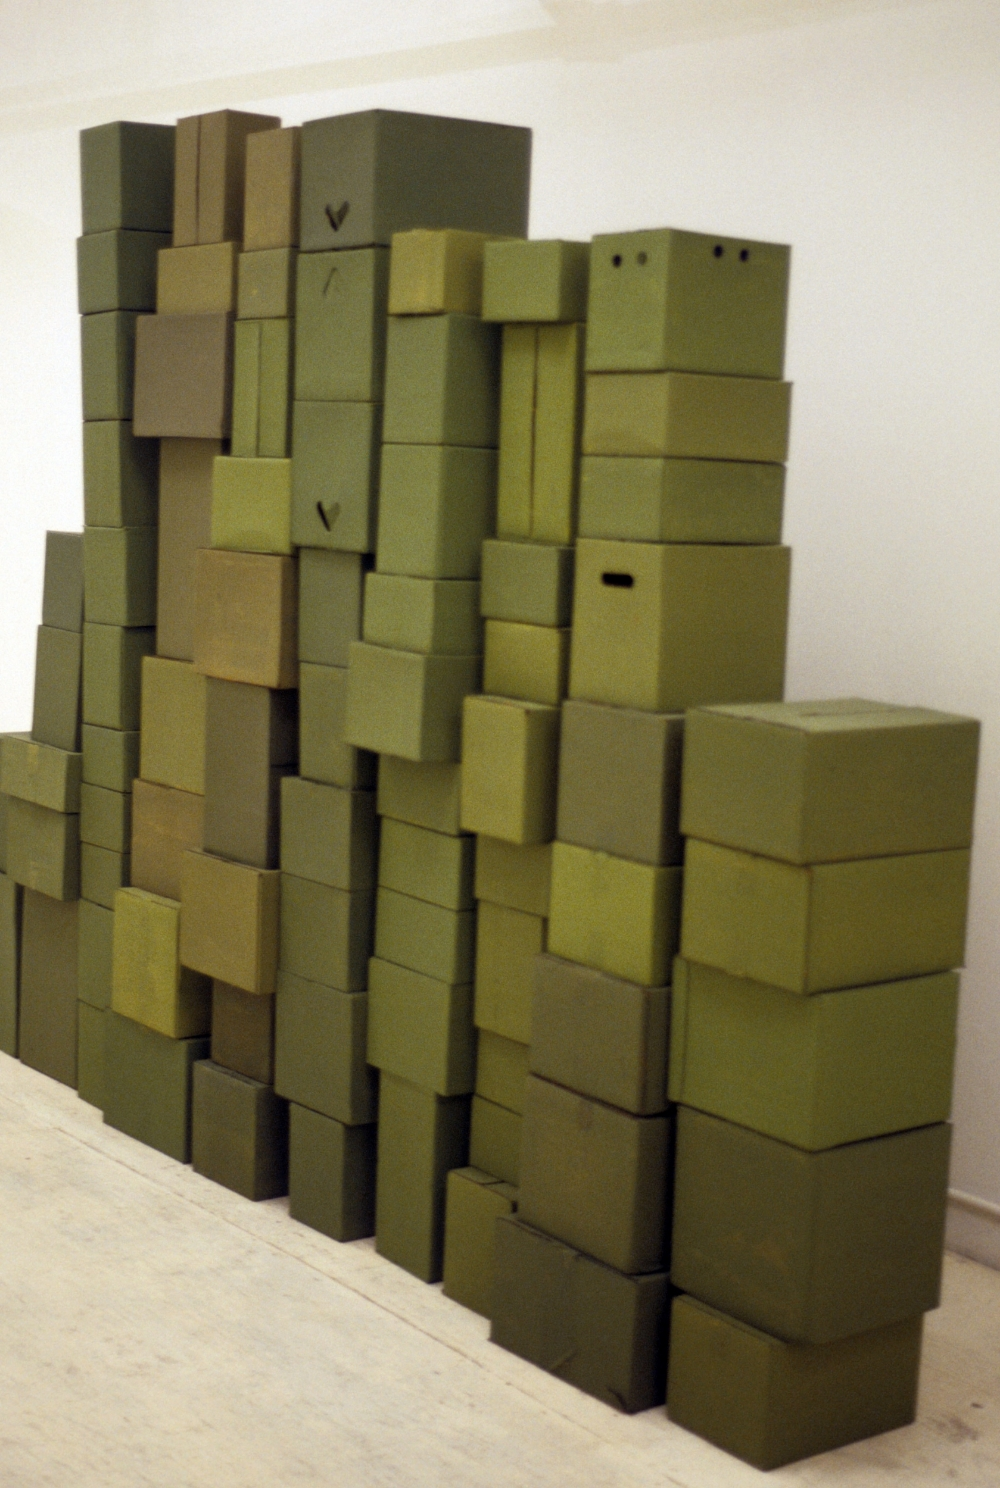 KS95S_Forest_latex on cardboard boxes_size variable.jpg